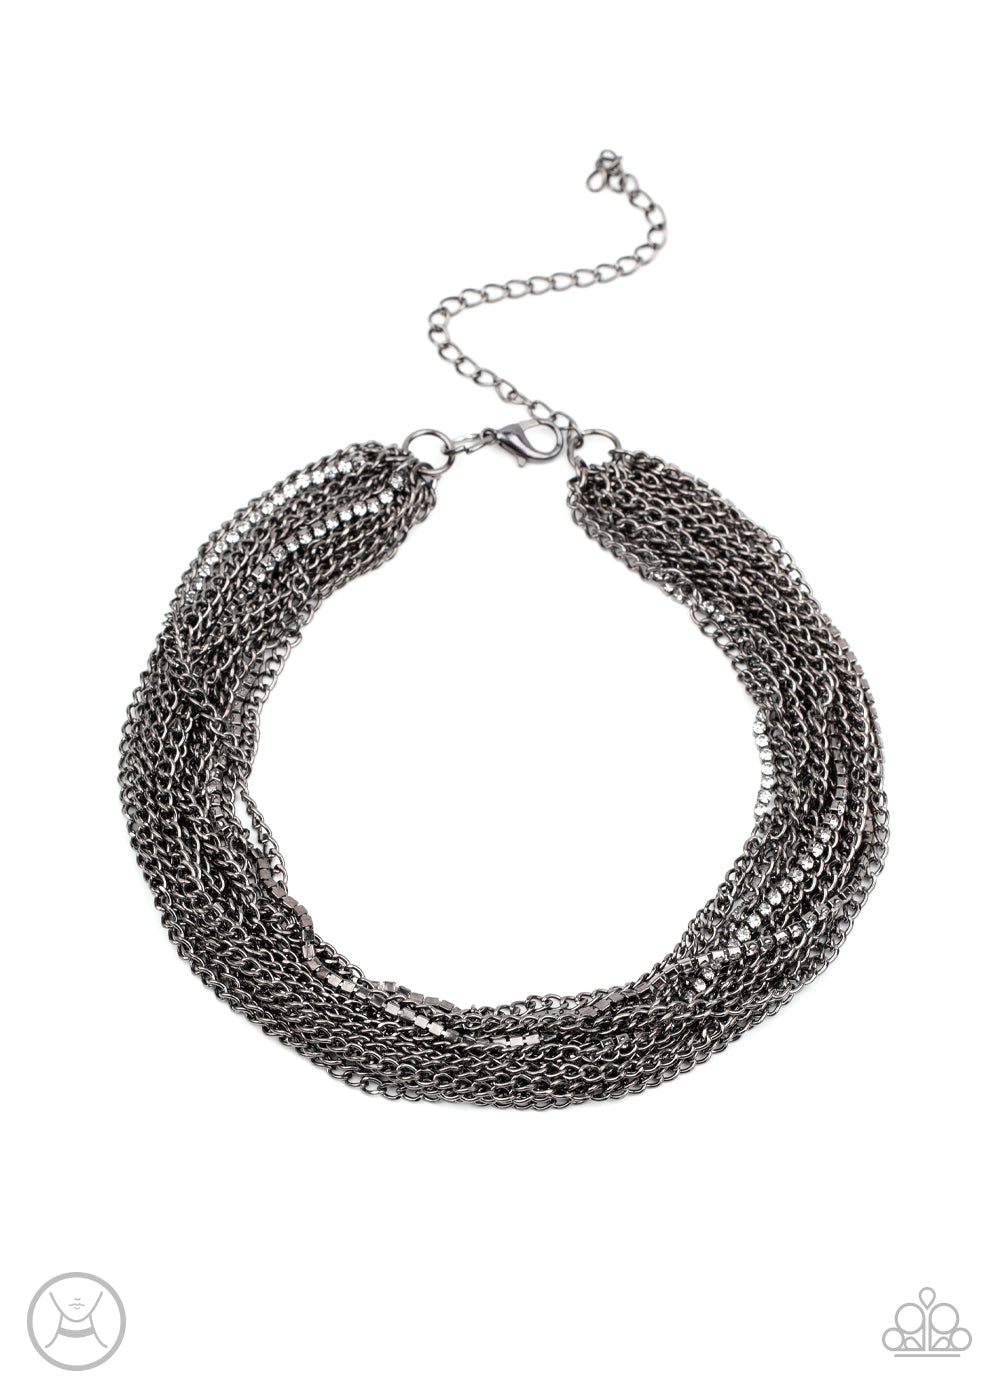 five-dollar-jewelry-catch-you-layer-black-paparazzi-accessories